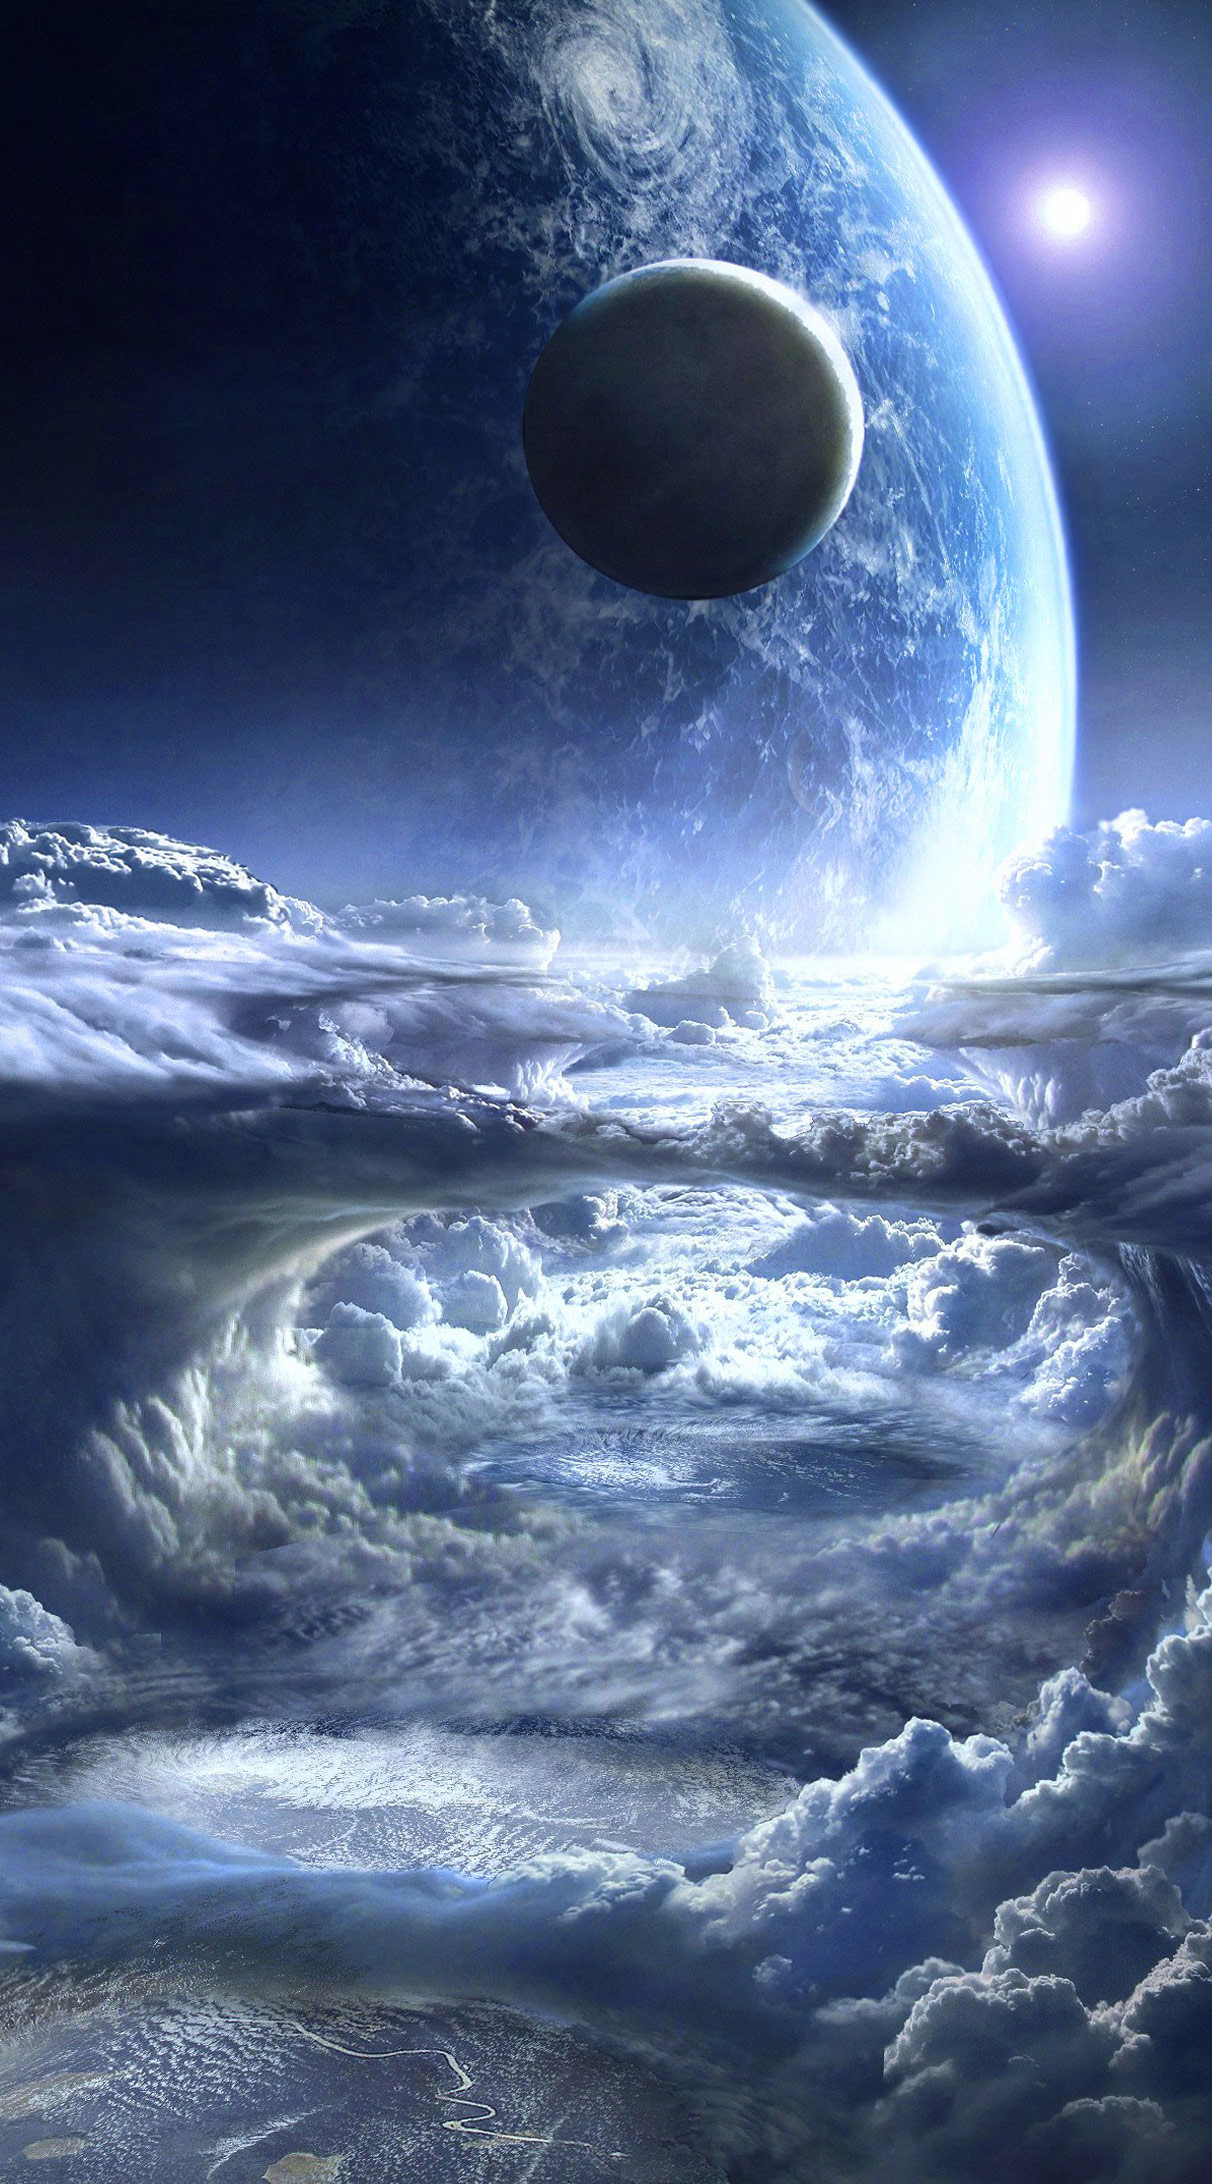 Sci-Fi Wallpapers HD and Widescreen | Sci-Fi Wallpapers 4K wallpaper http: